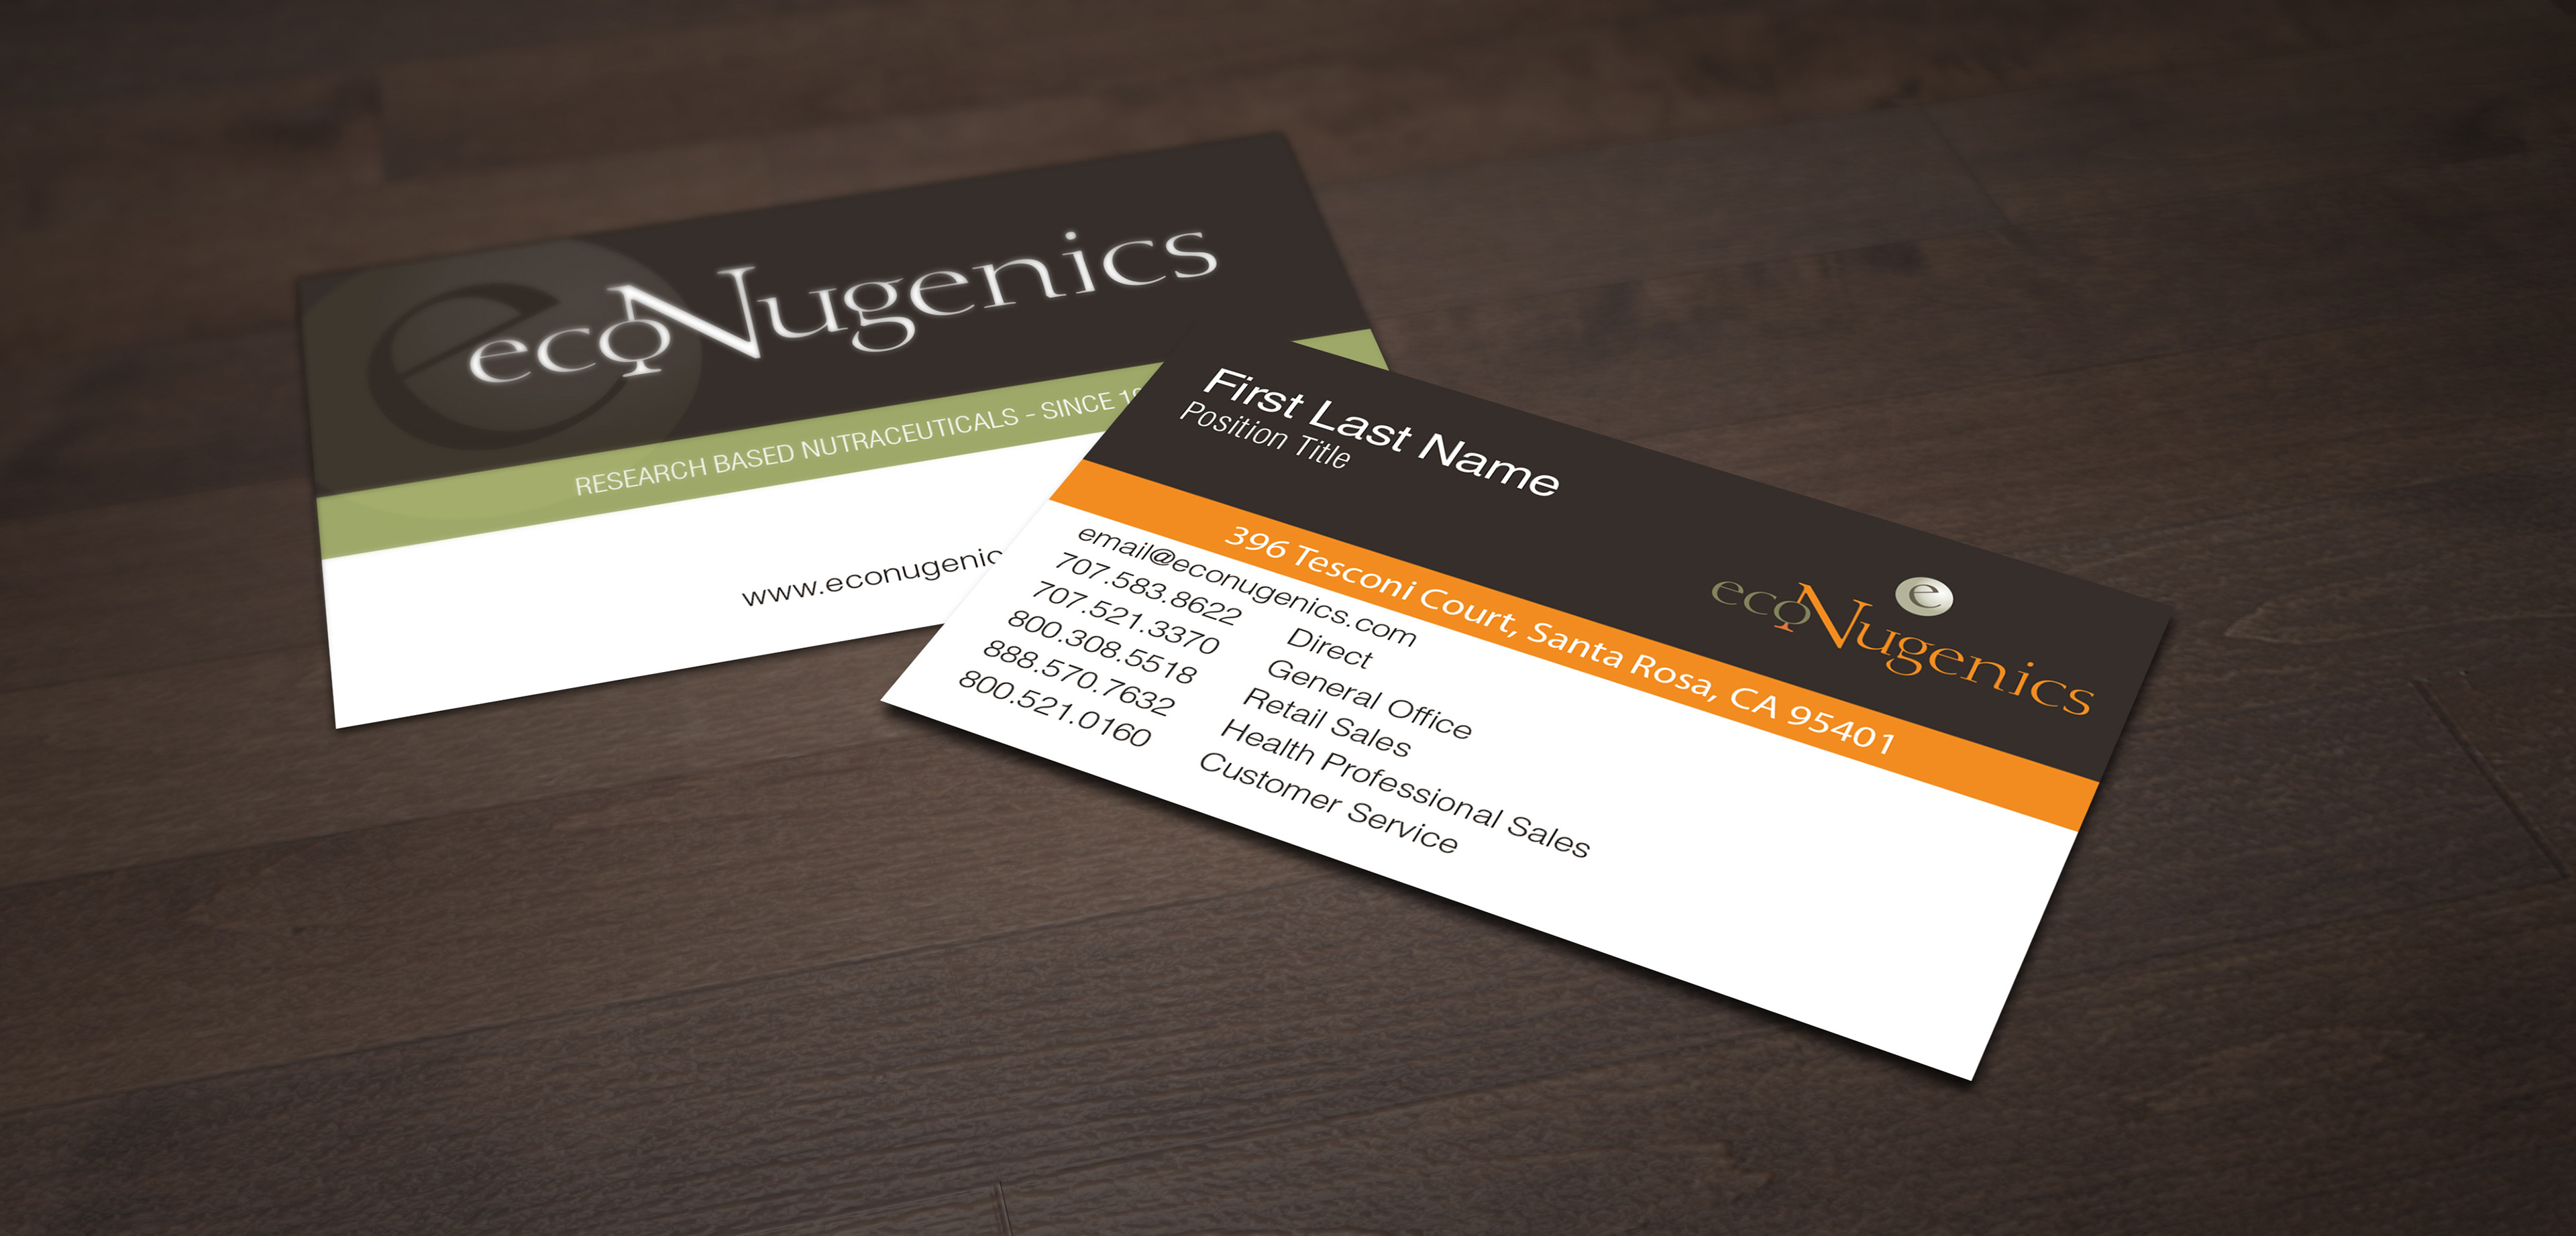 Rod Encarnacion - ecoNugenics - Business Card Re-Design